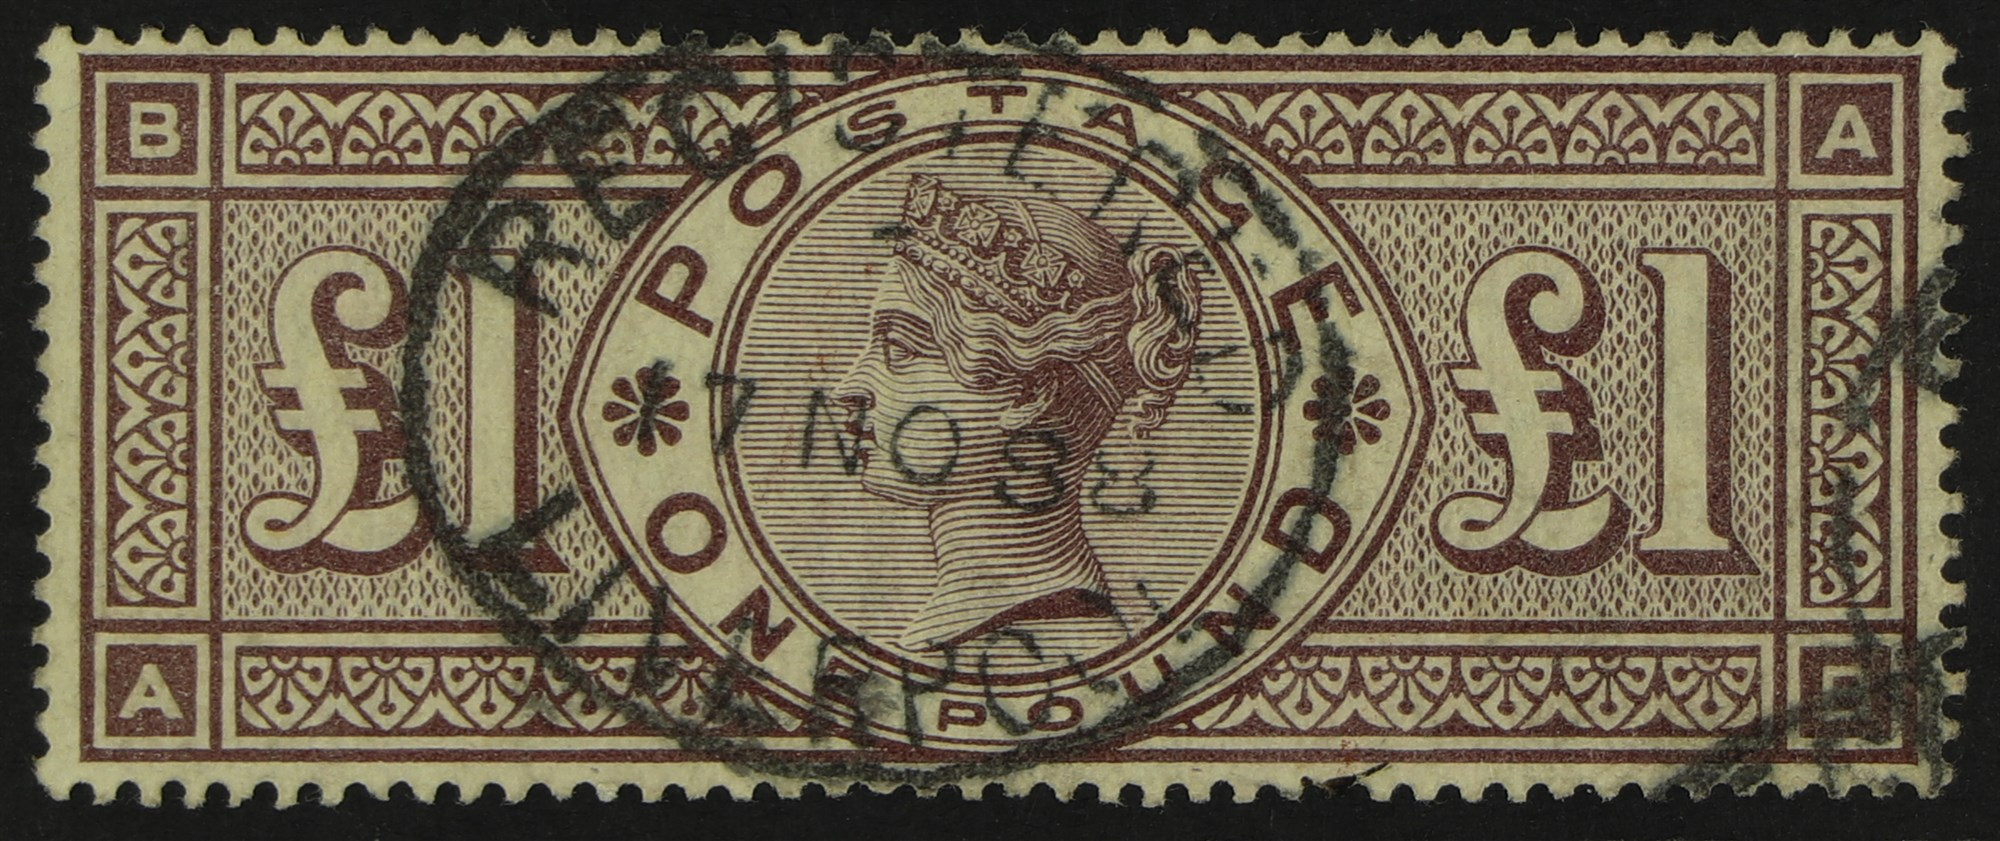 GB.QUEEN VICTORIA 1888 £1 brown-lilac, watermark Orbs, SG 186, neat Liverpool 1888 oval Registered